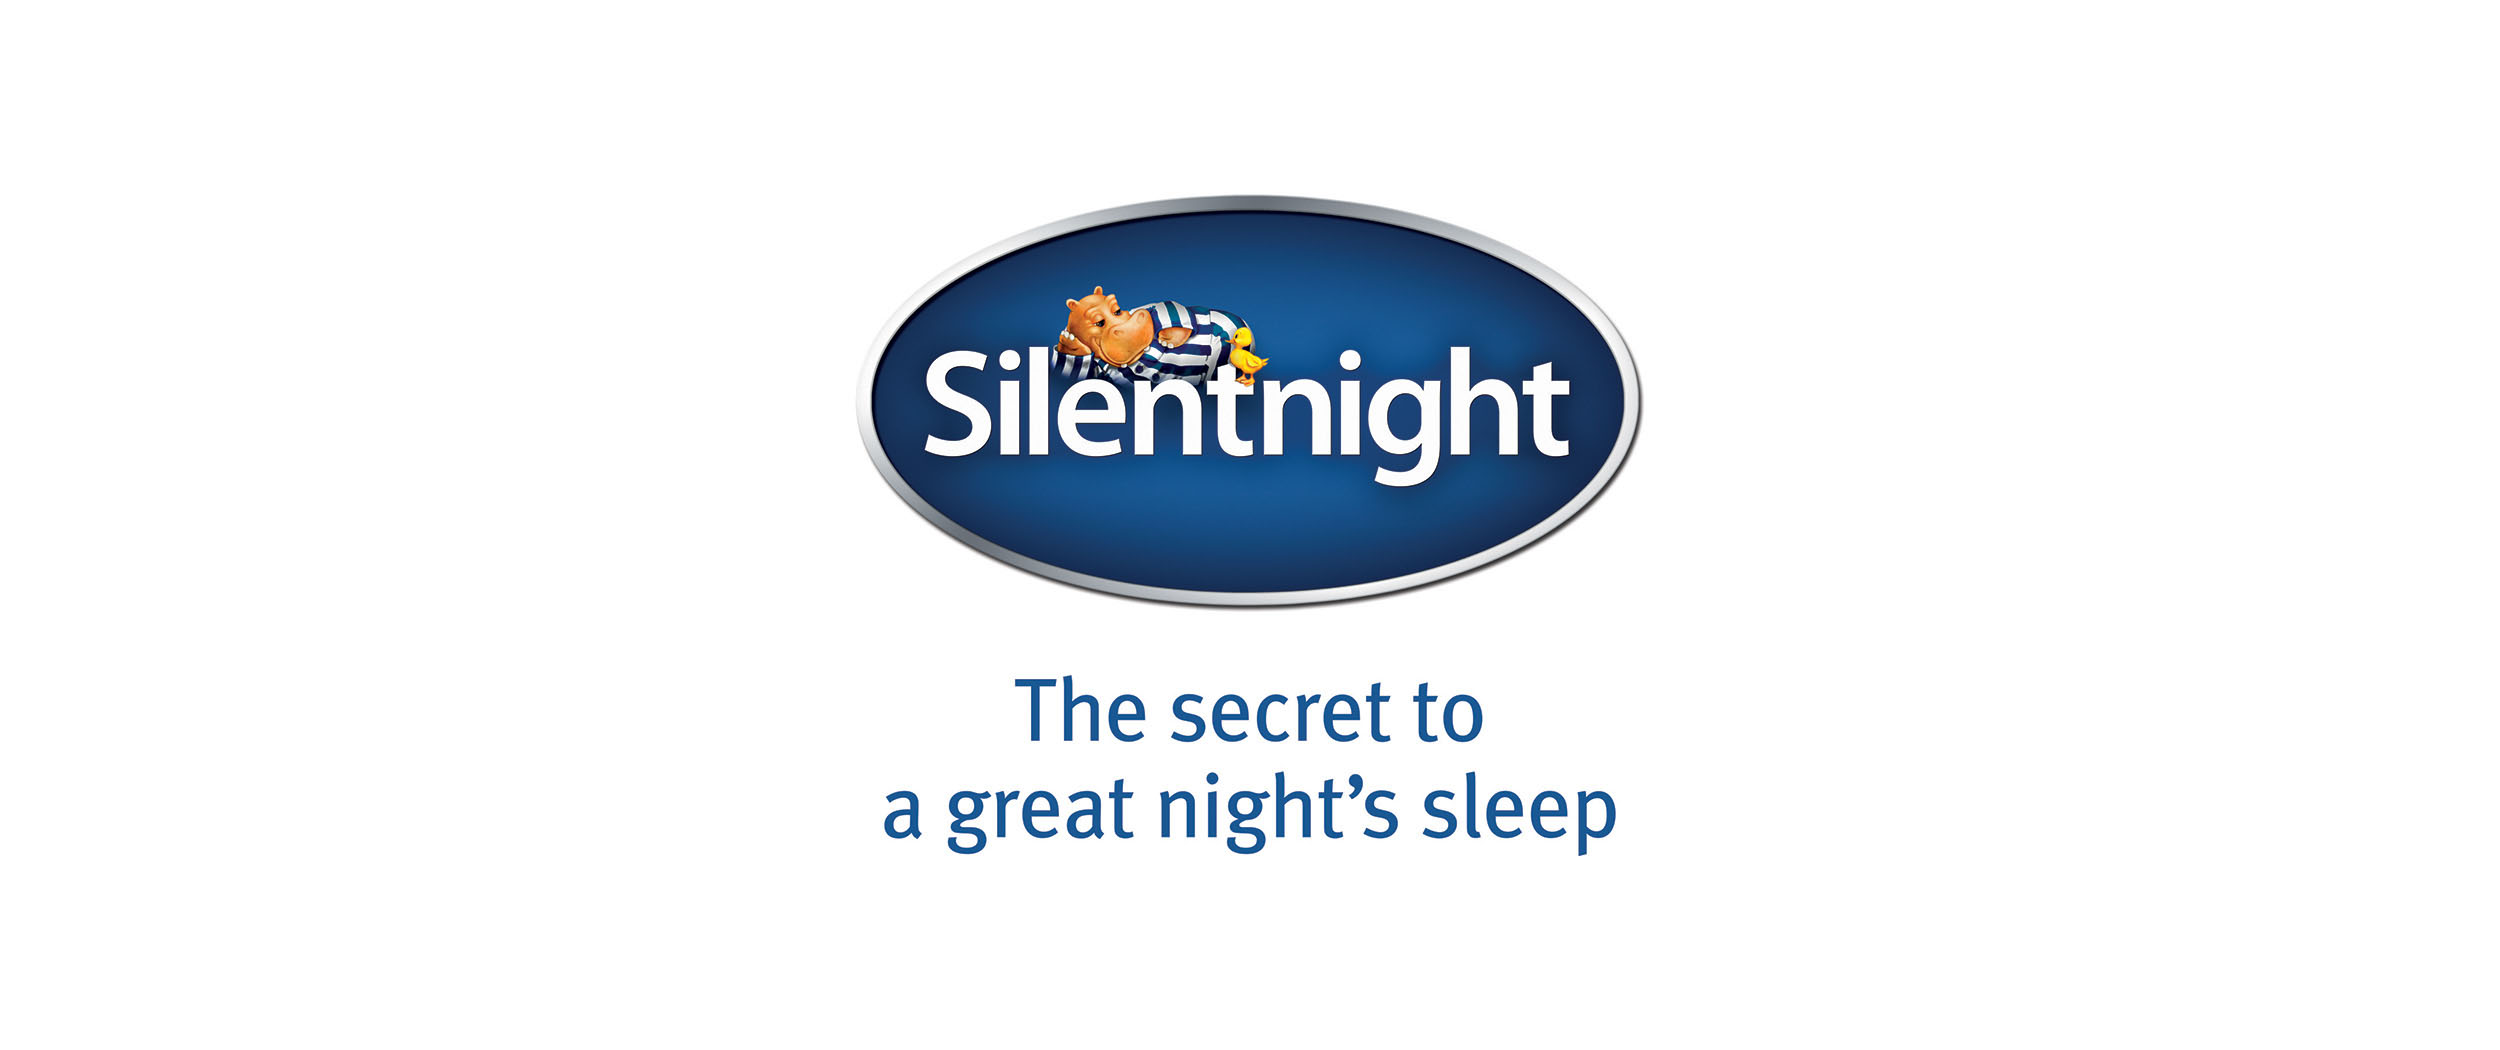 Silentnight Print Logo copy.jpg